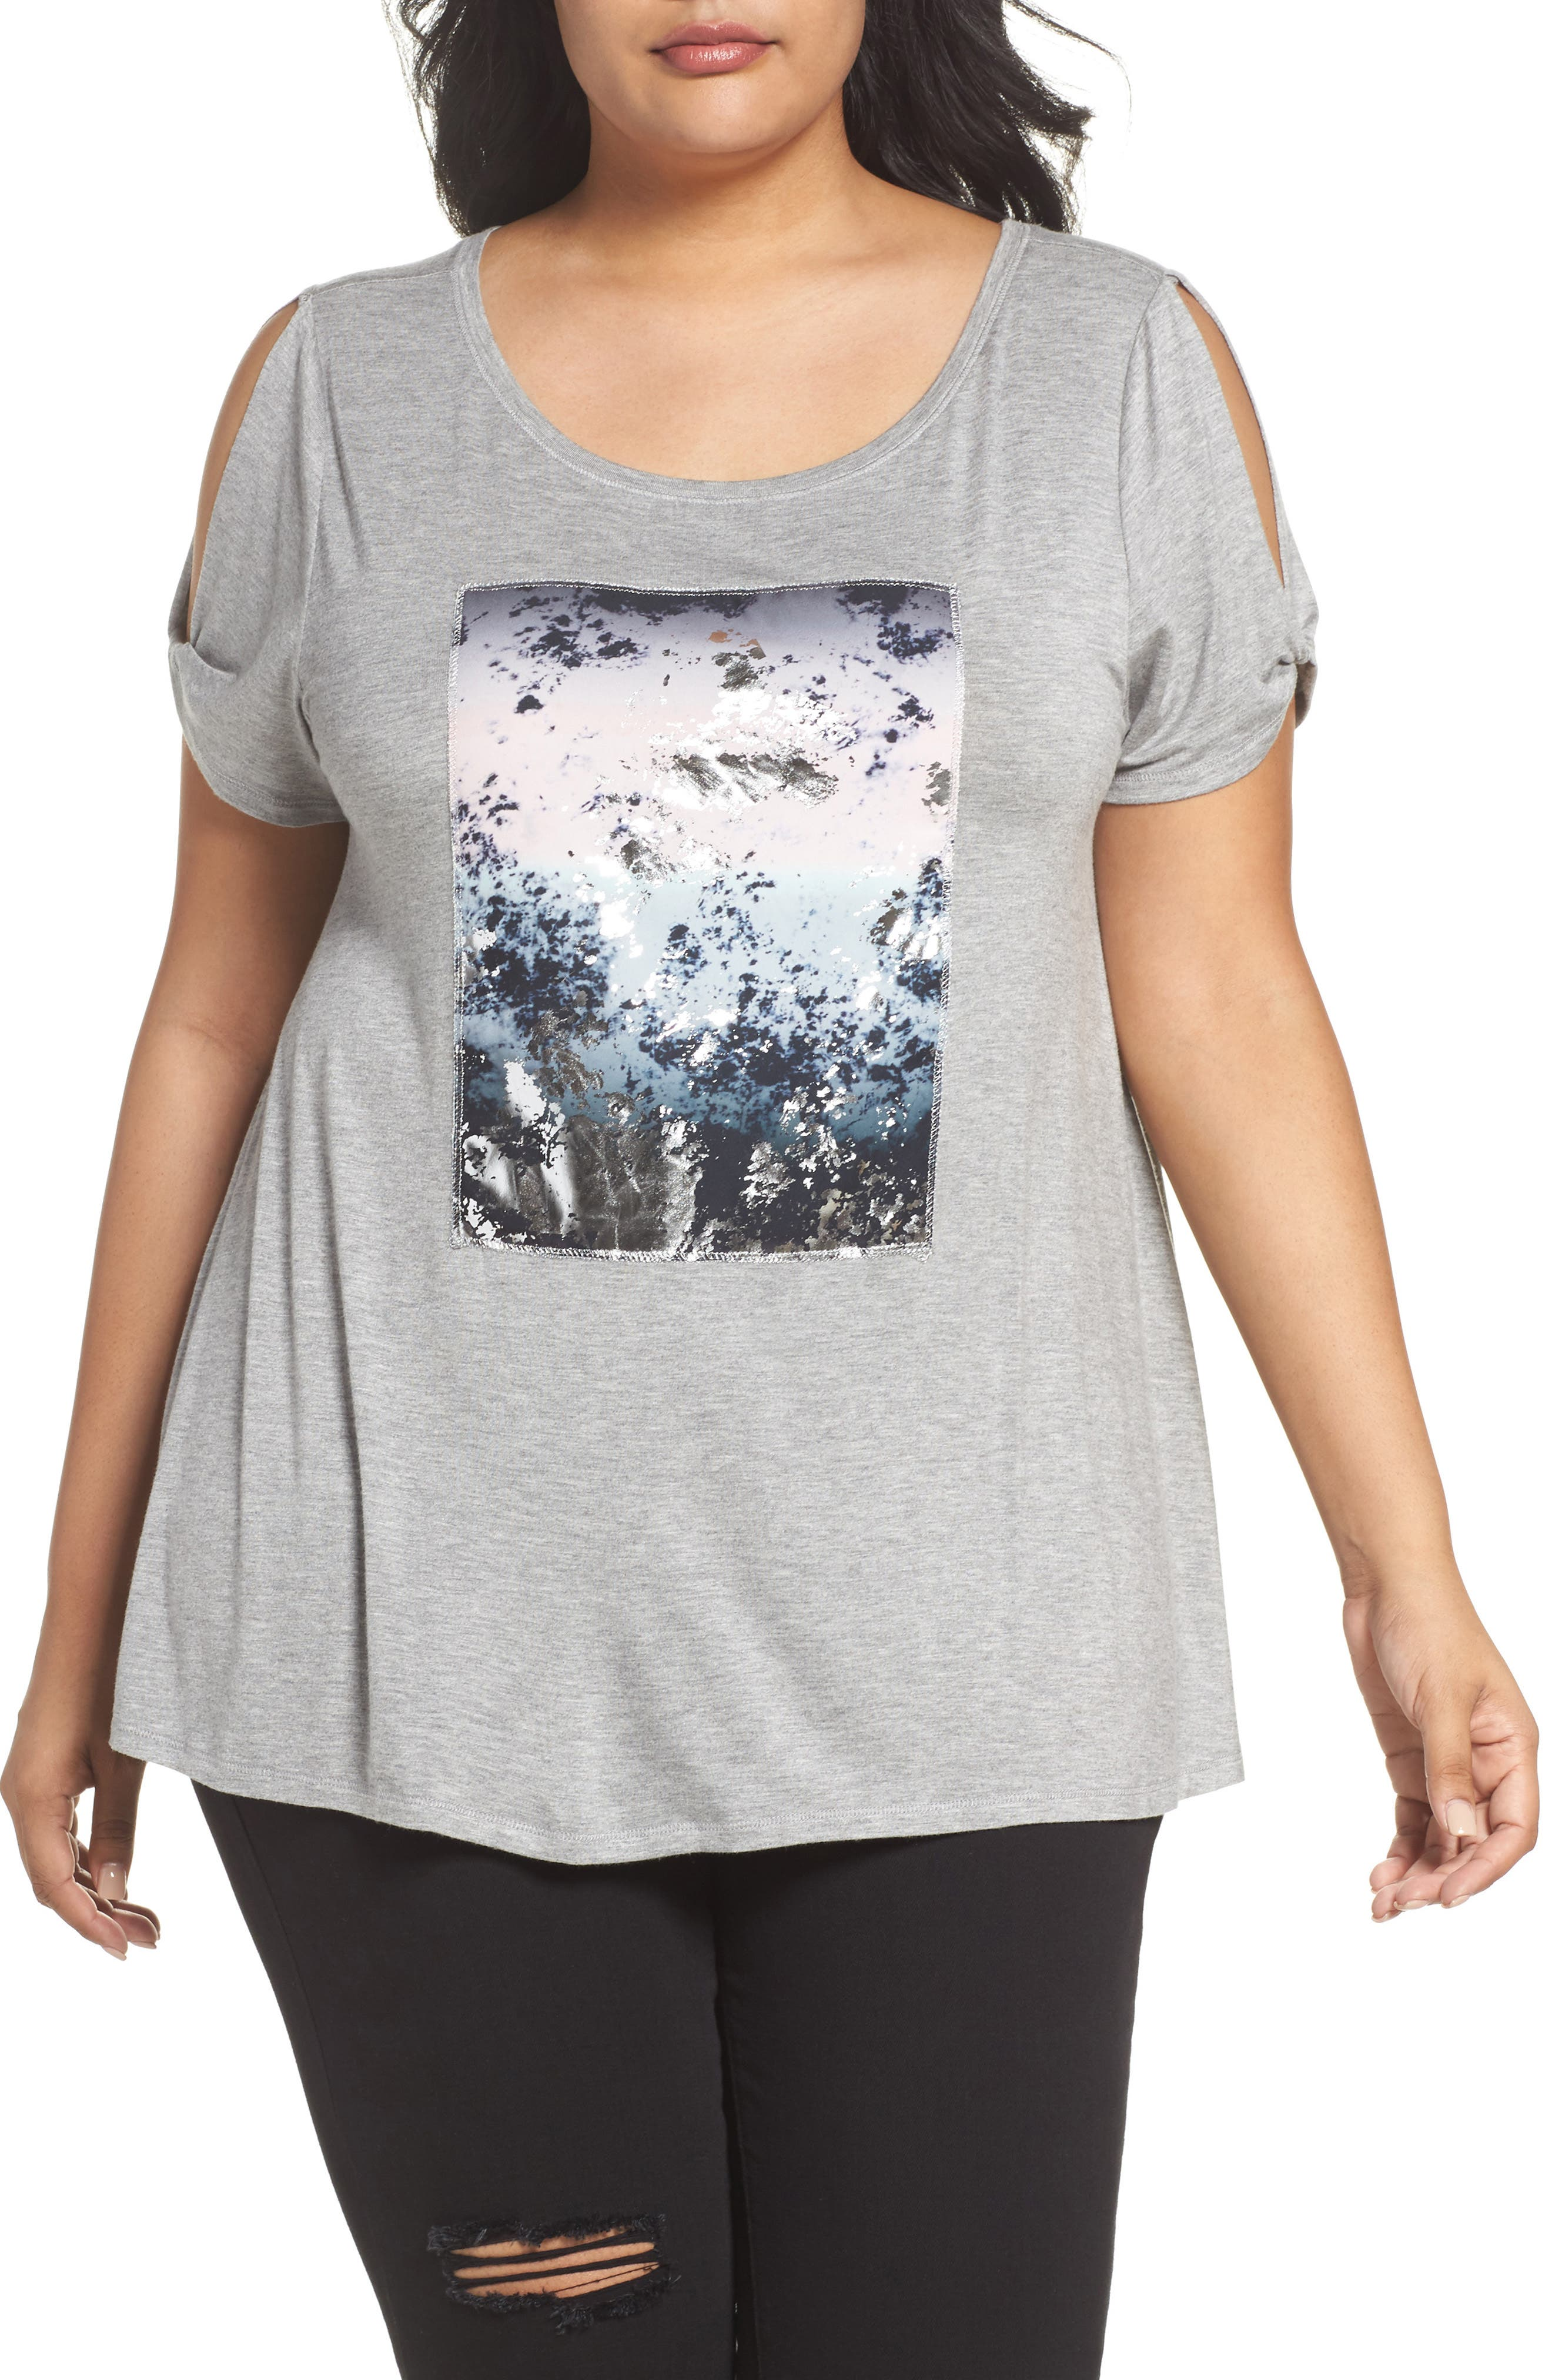 REBEL WILSON X ANGELS Graphic Swing Tee (Plus Size)